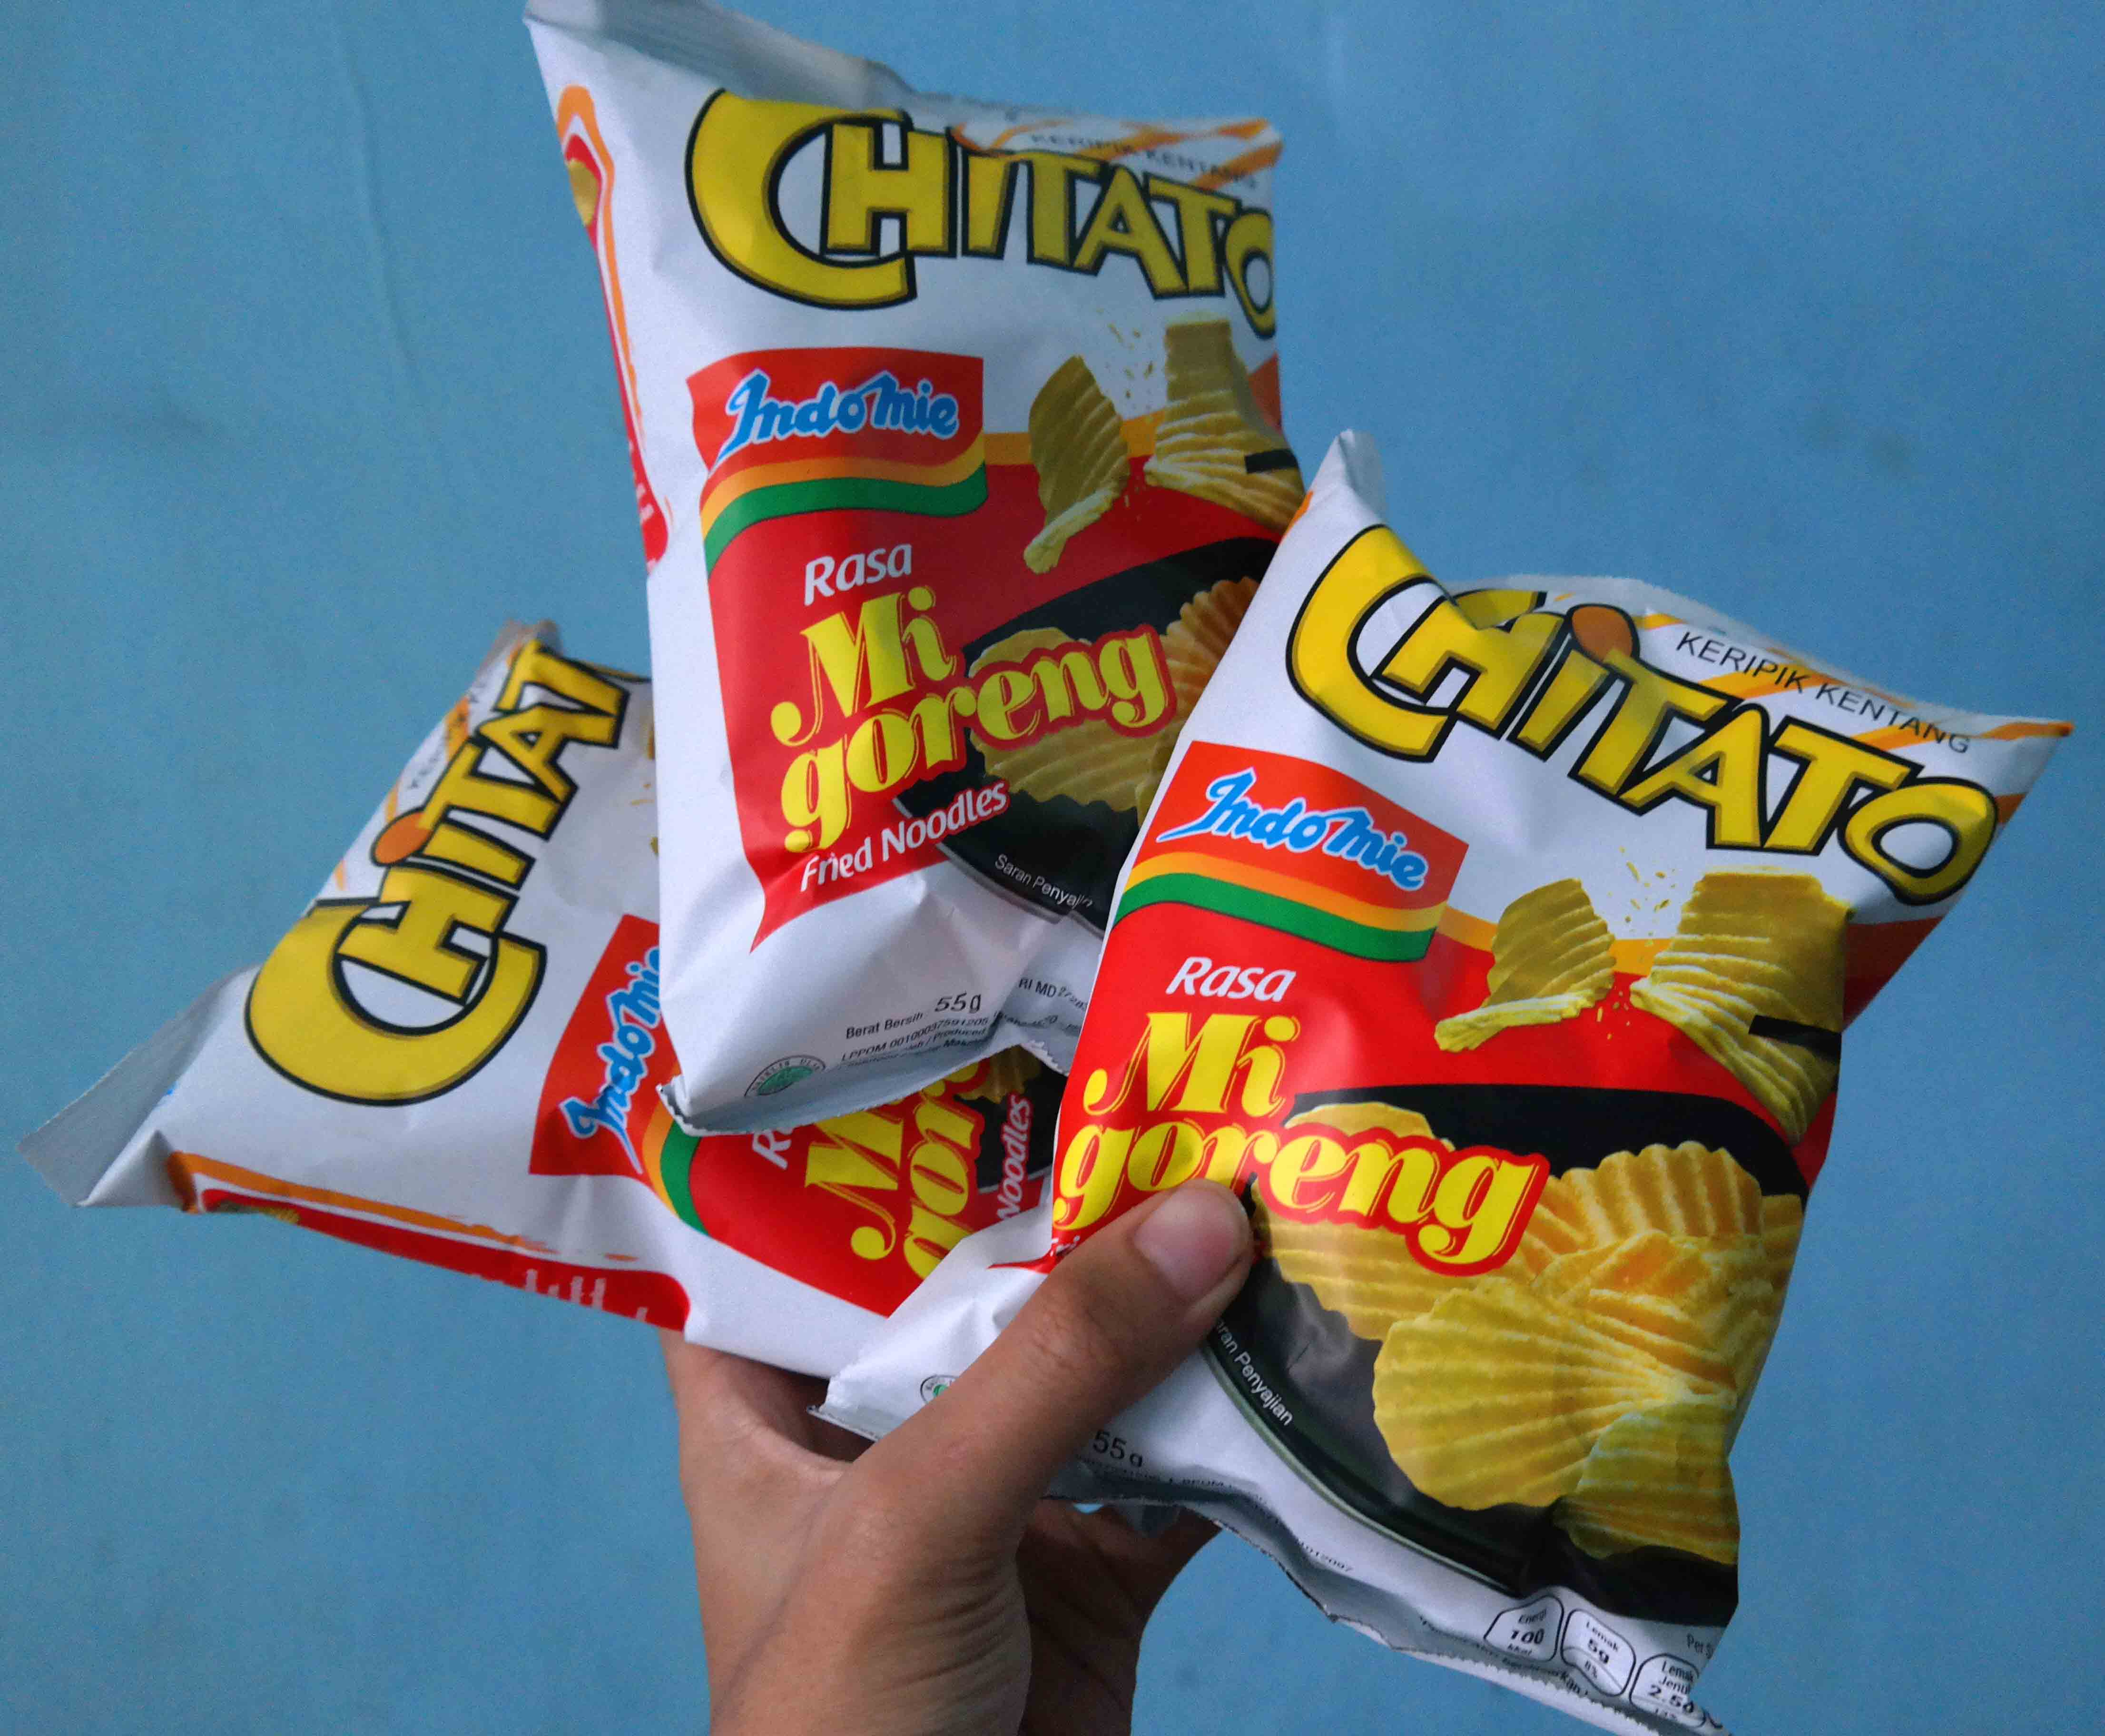 image review Chitato Indomie Goreng